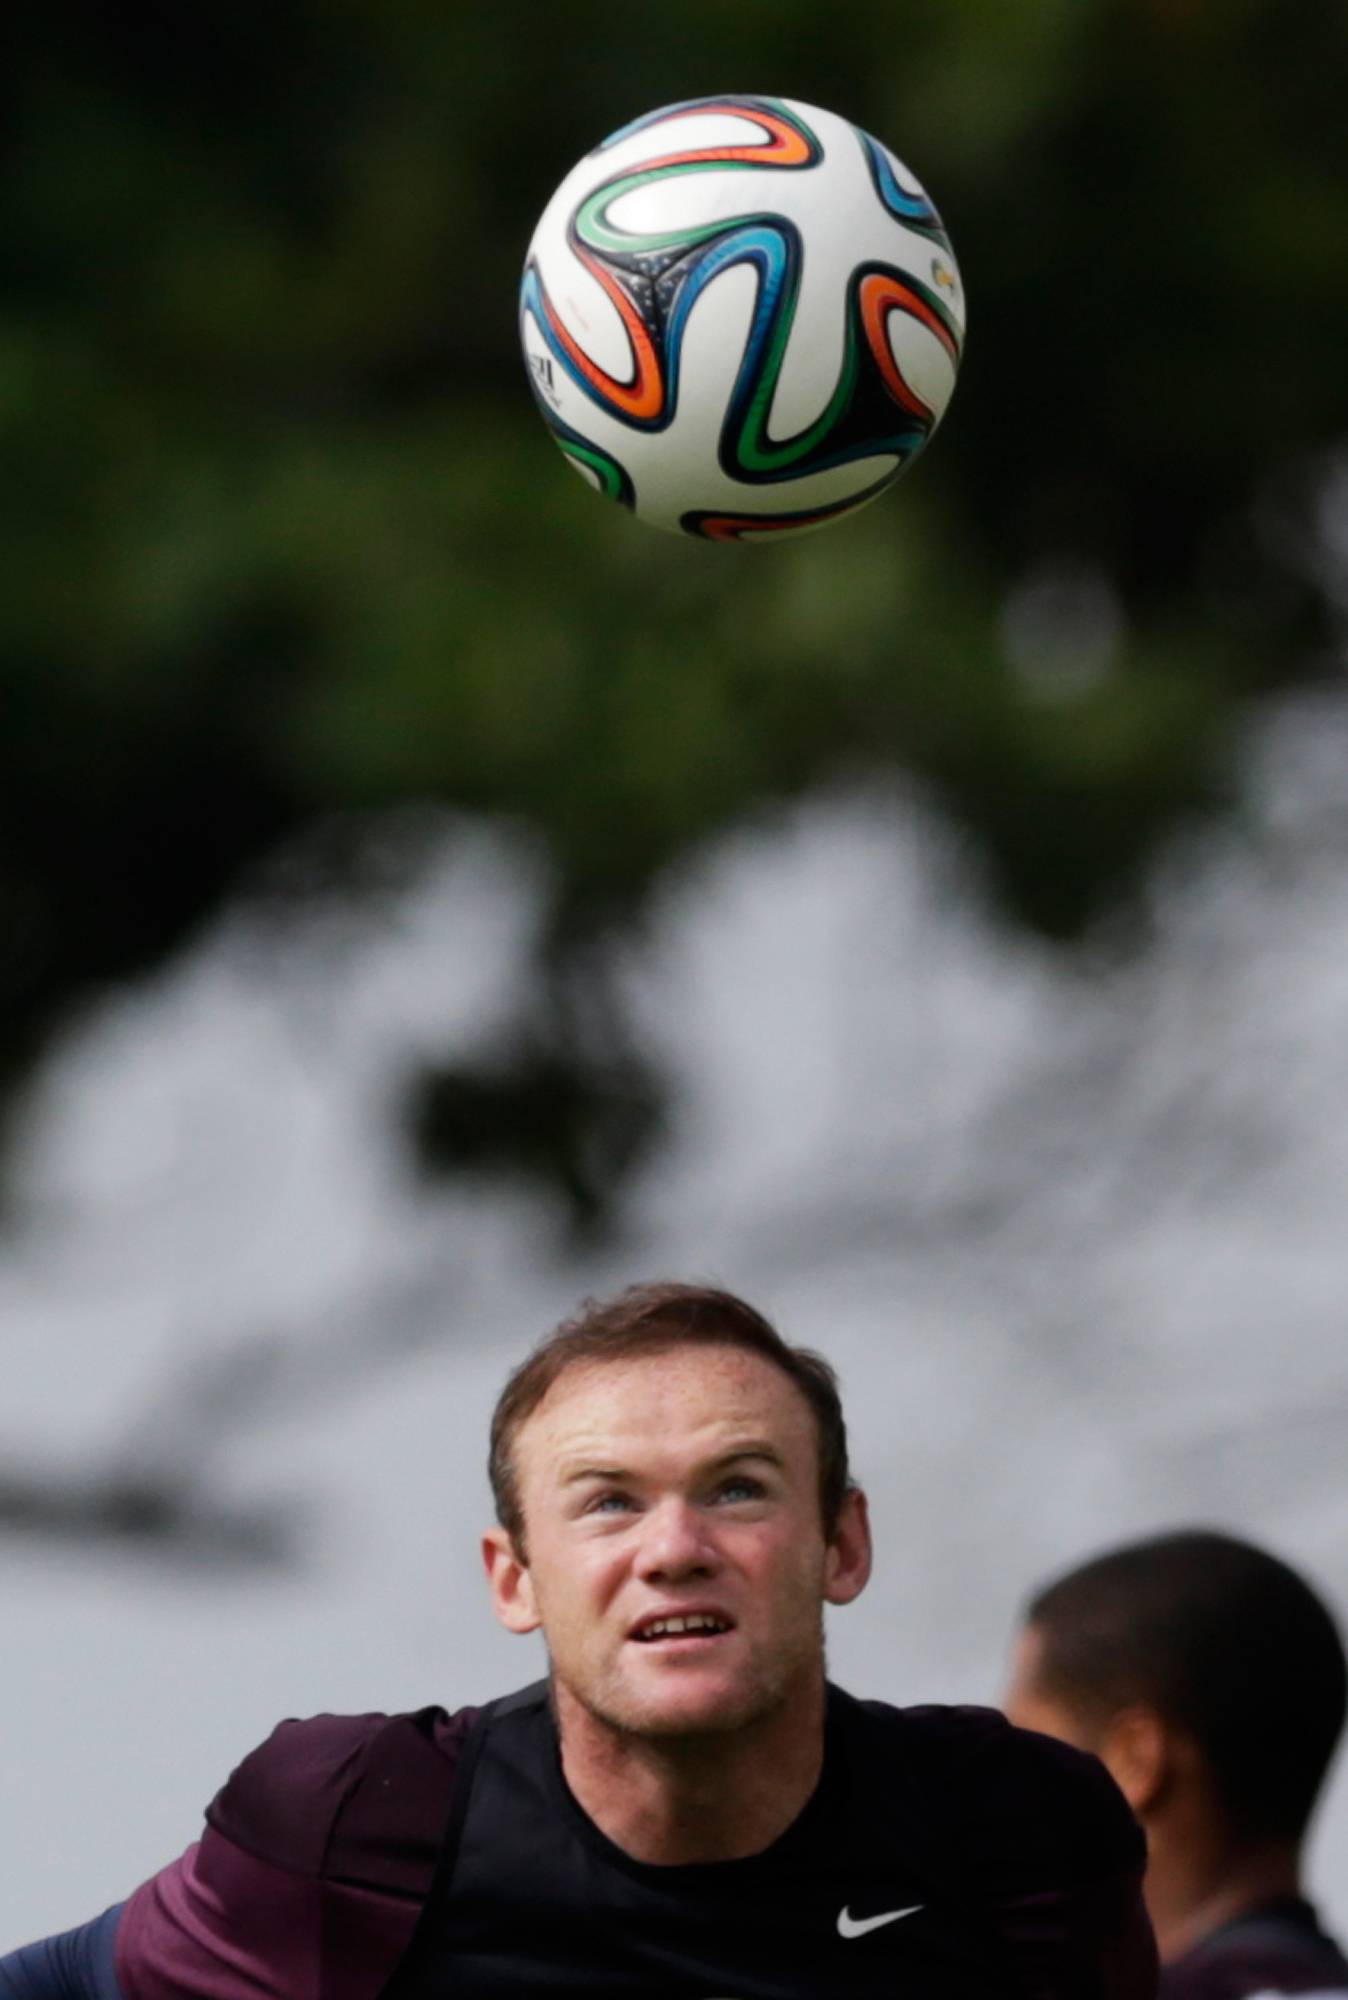 England national soccer team player Wayne Rooney heads a ball during a training session Wednesday at the Urca military base in Rio de Janeiro, Brazil.